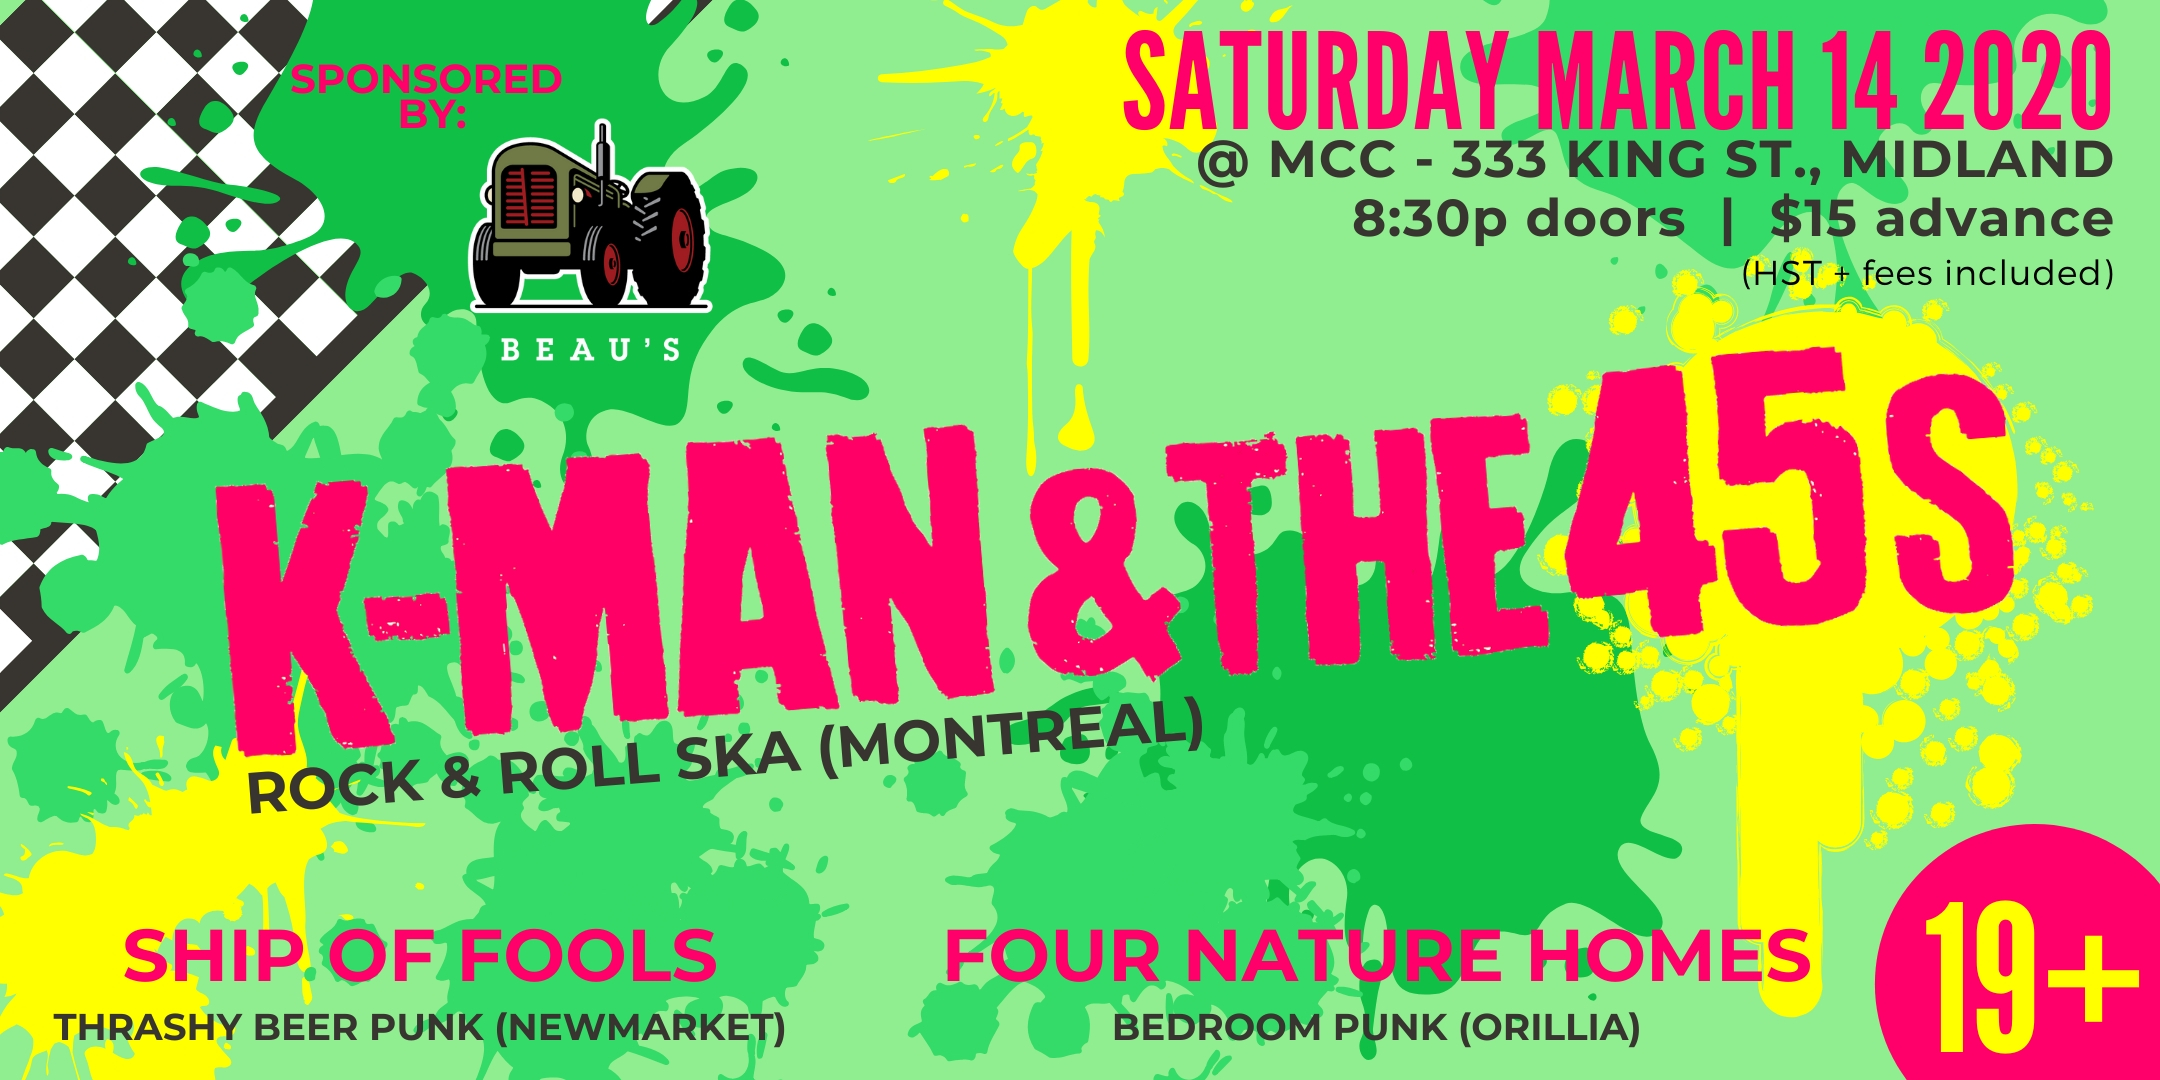 K-Man & the 45s, Ship of Fools, Four Nature Homes @ MCC. 19+